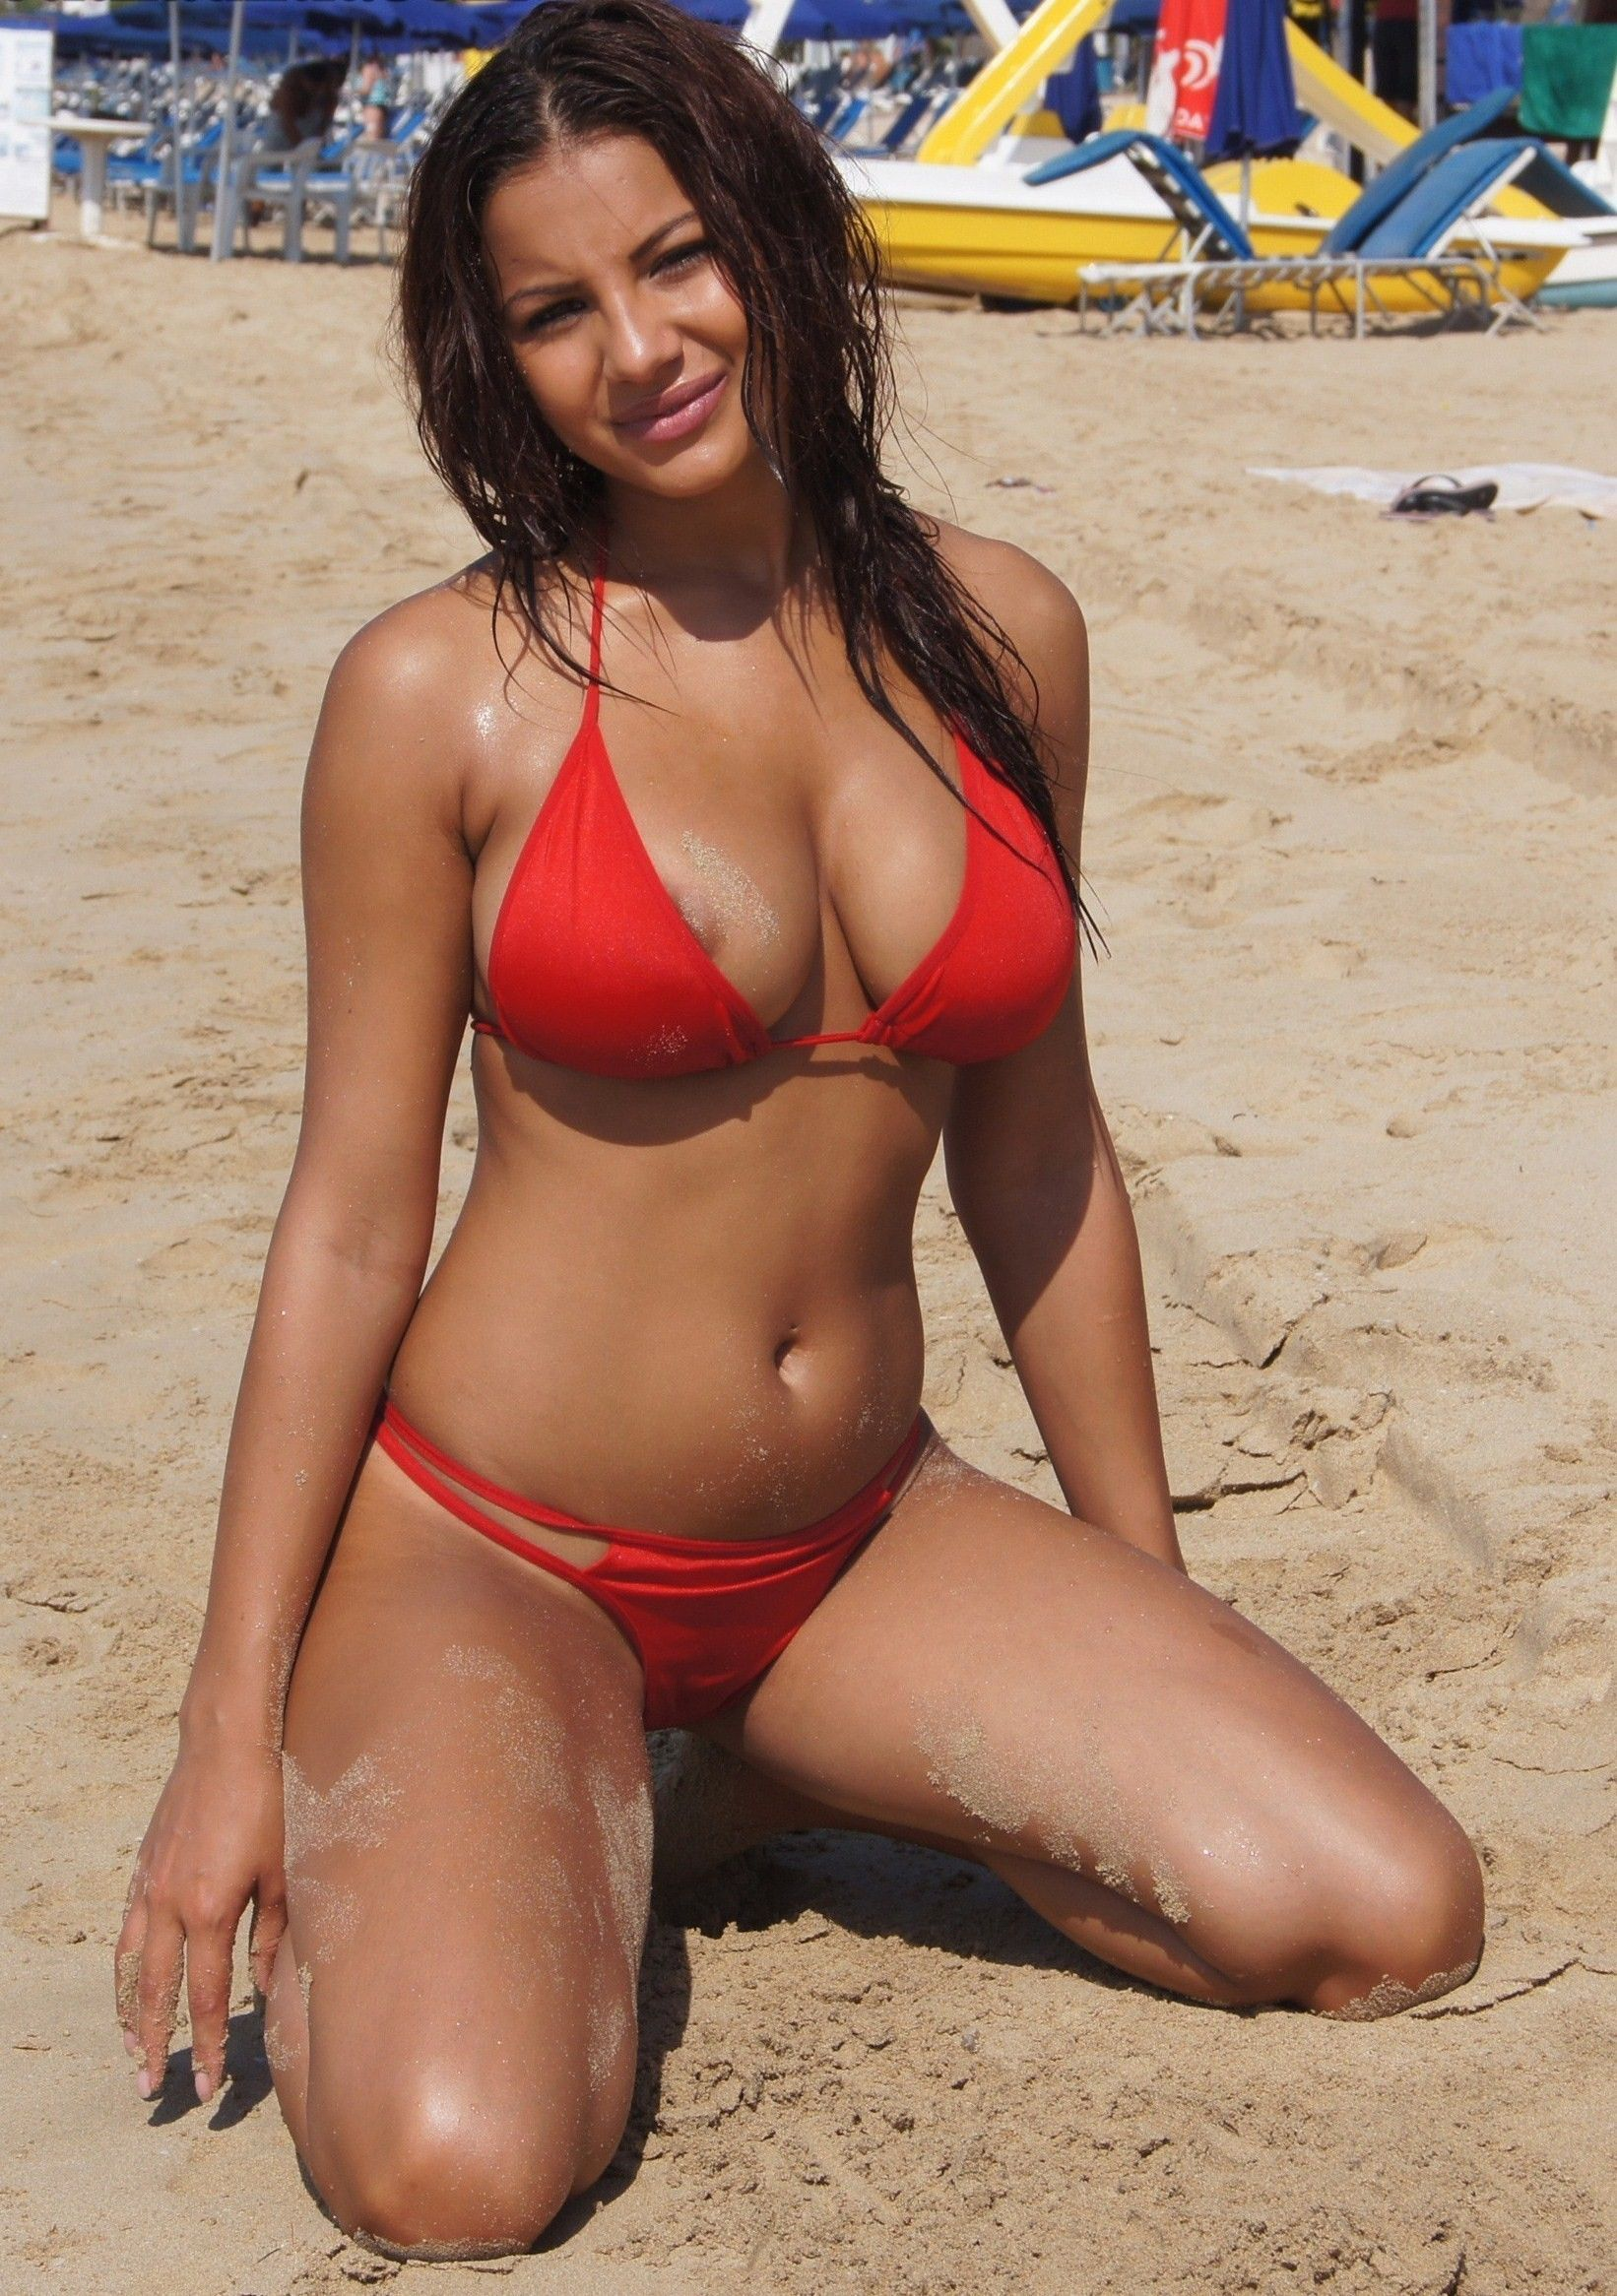 Gorgeous Girl In A Red Bikini